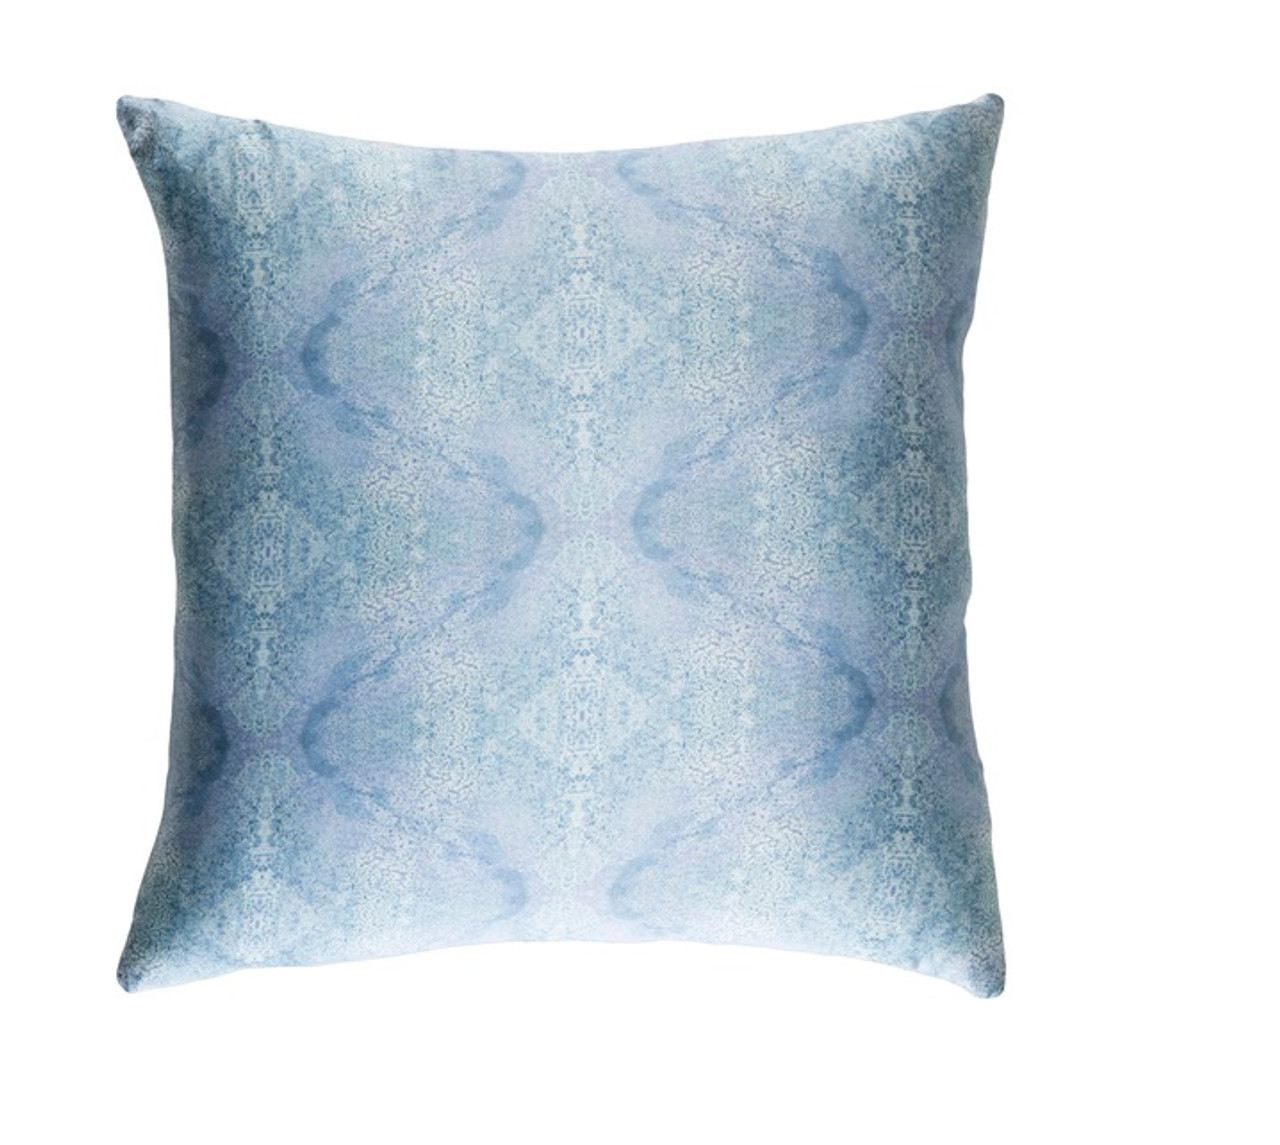 18? Icy & Ribbon Blue Woven Decorative Throw Pillow-Down Filler Christmas Central